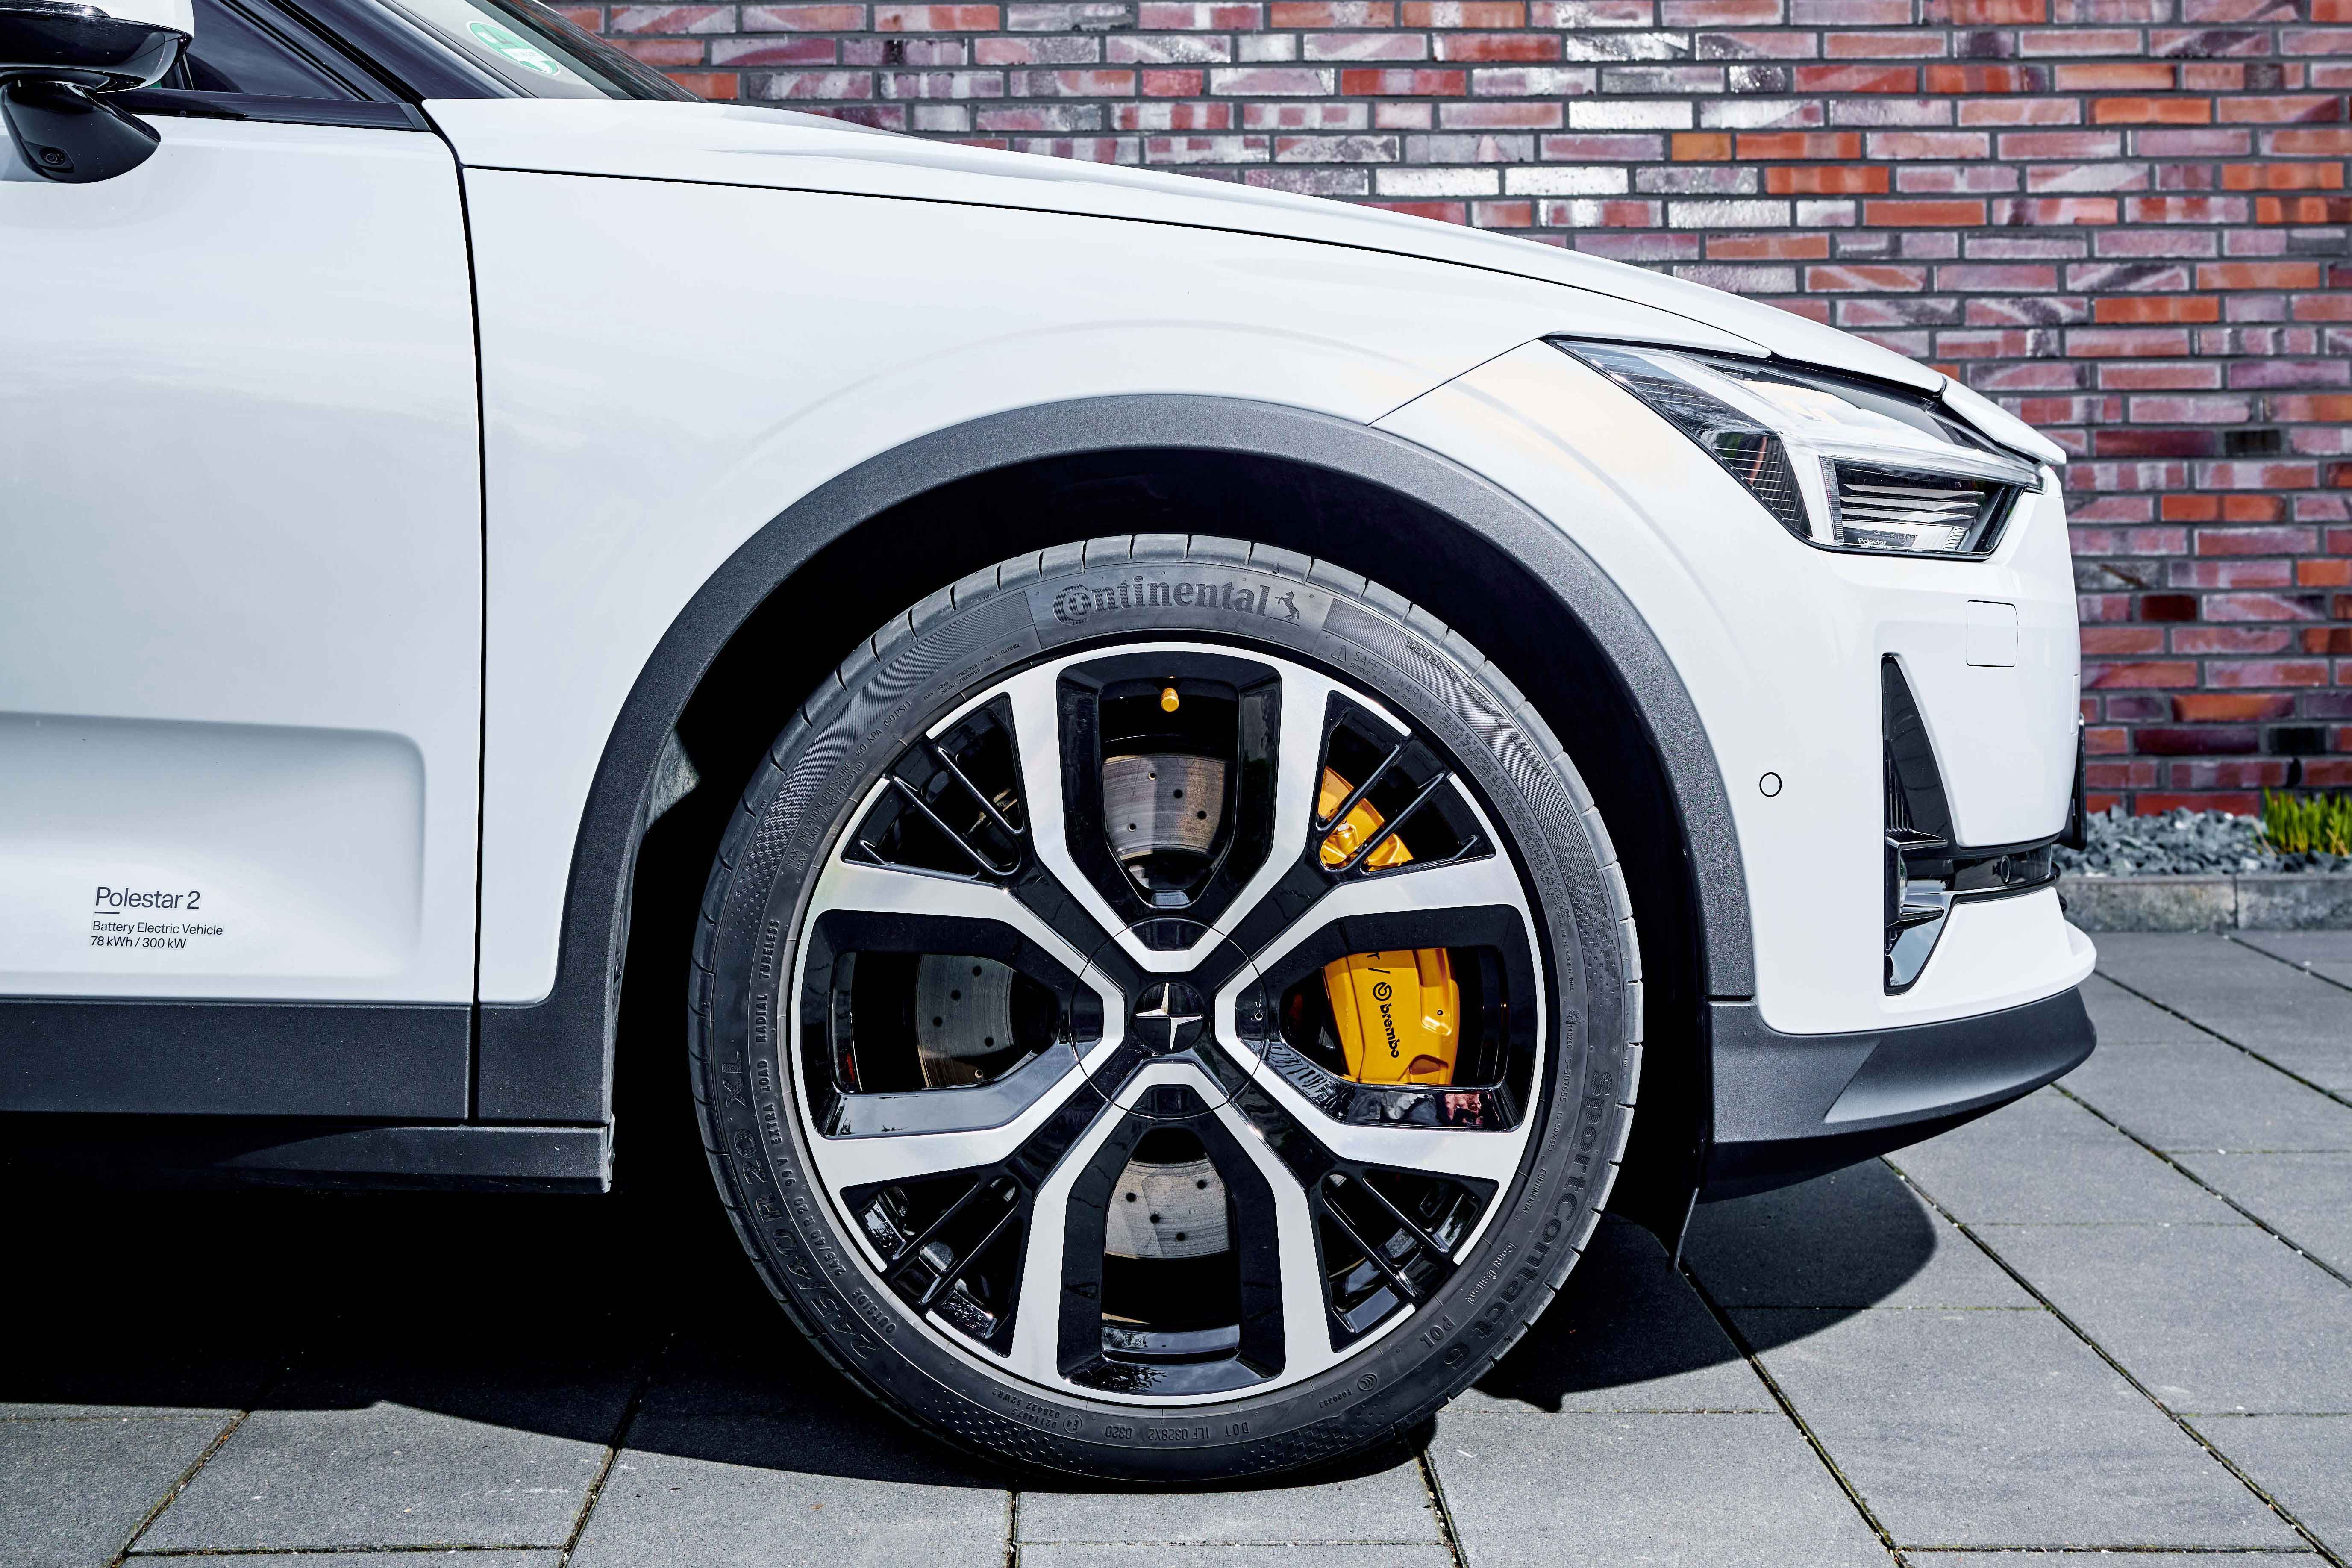 Continental supplies tires for more than 40 percent of all electric car and van models produced in Europe